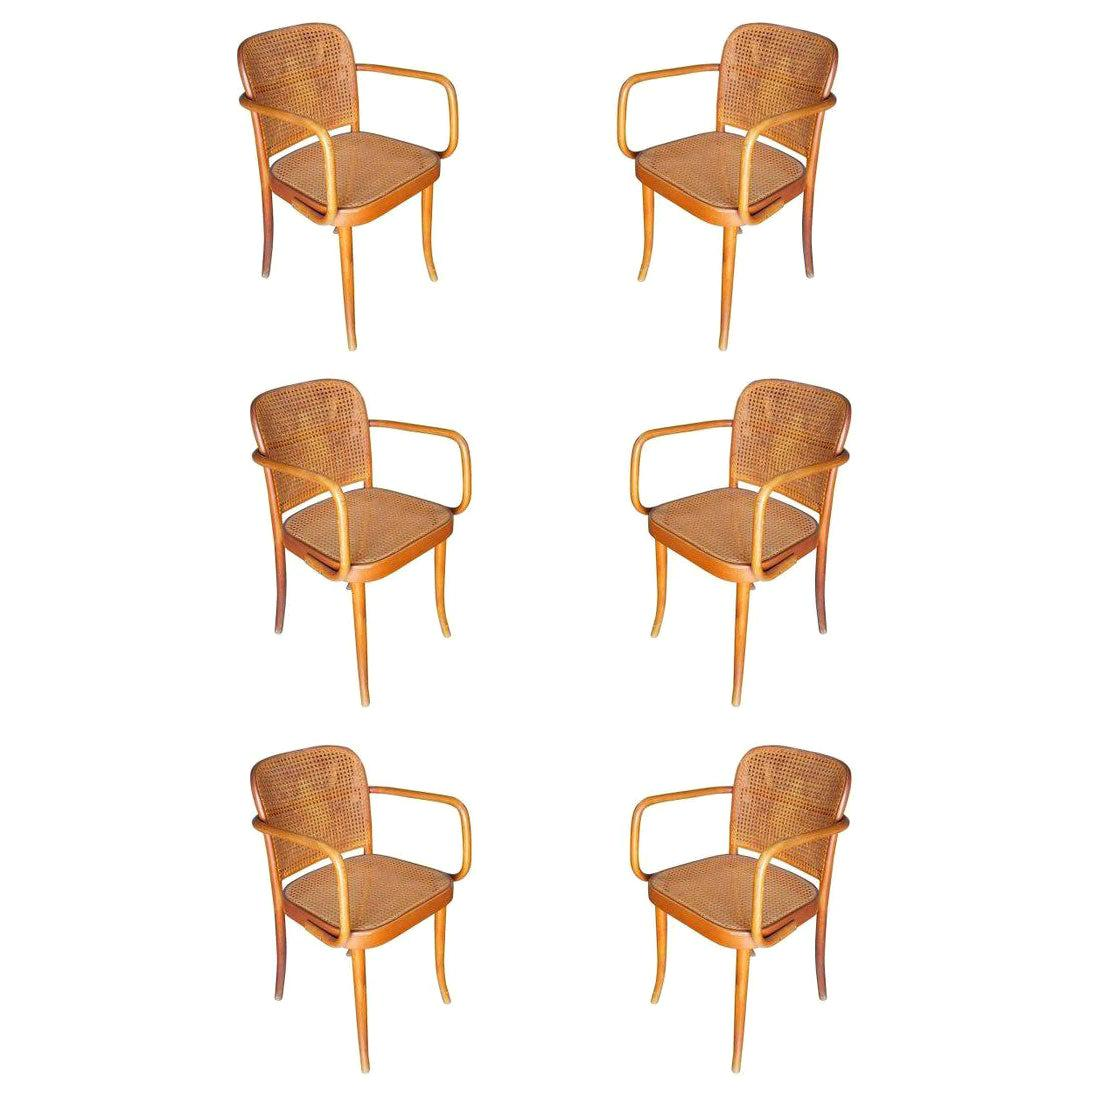 Josef Hoffmann for Stendig Bentwood Cane Dining Chairs, Set of Six